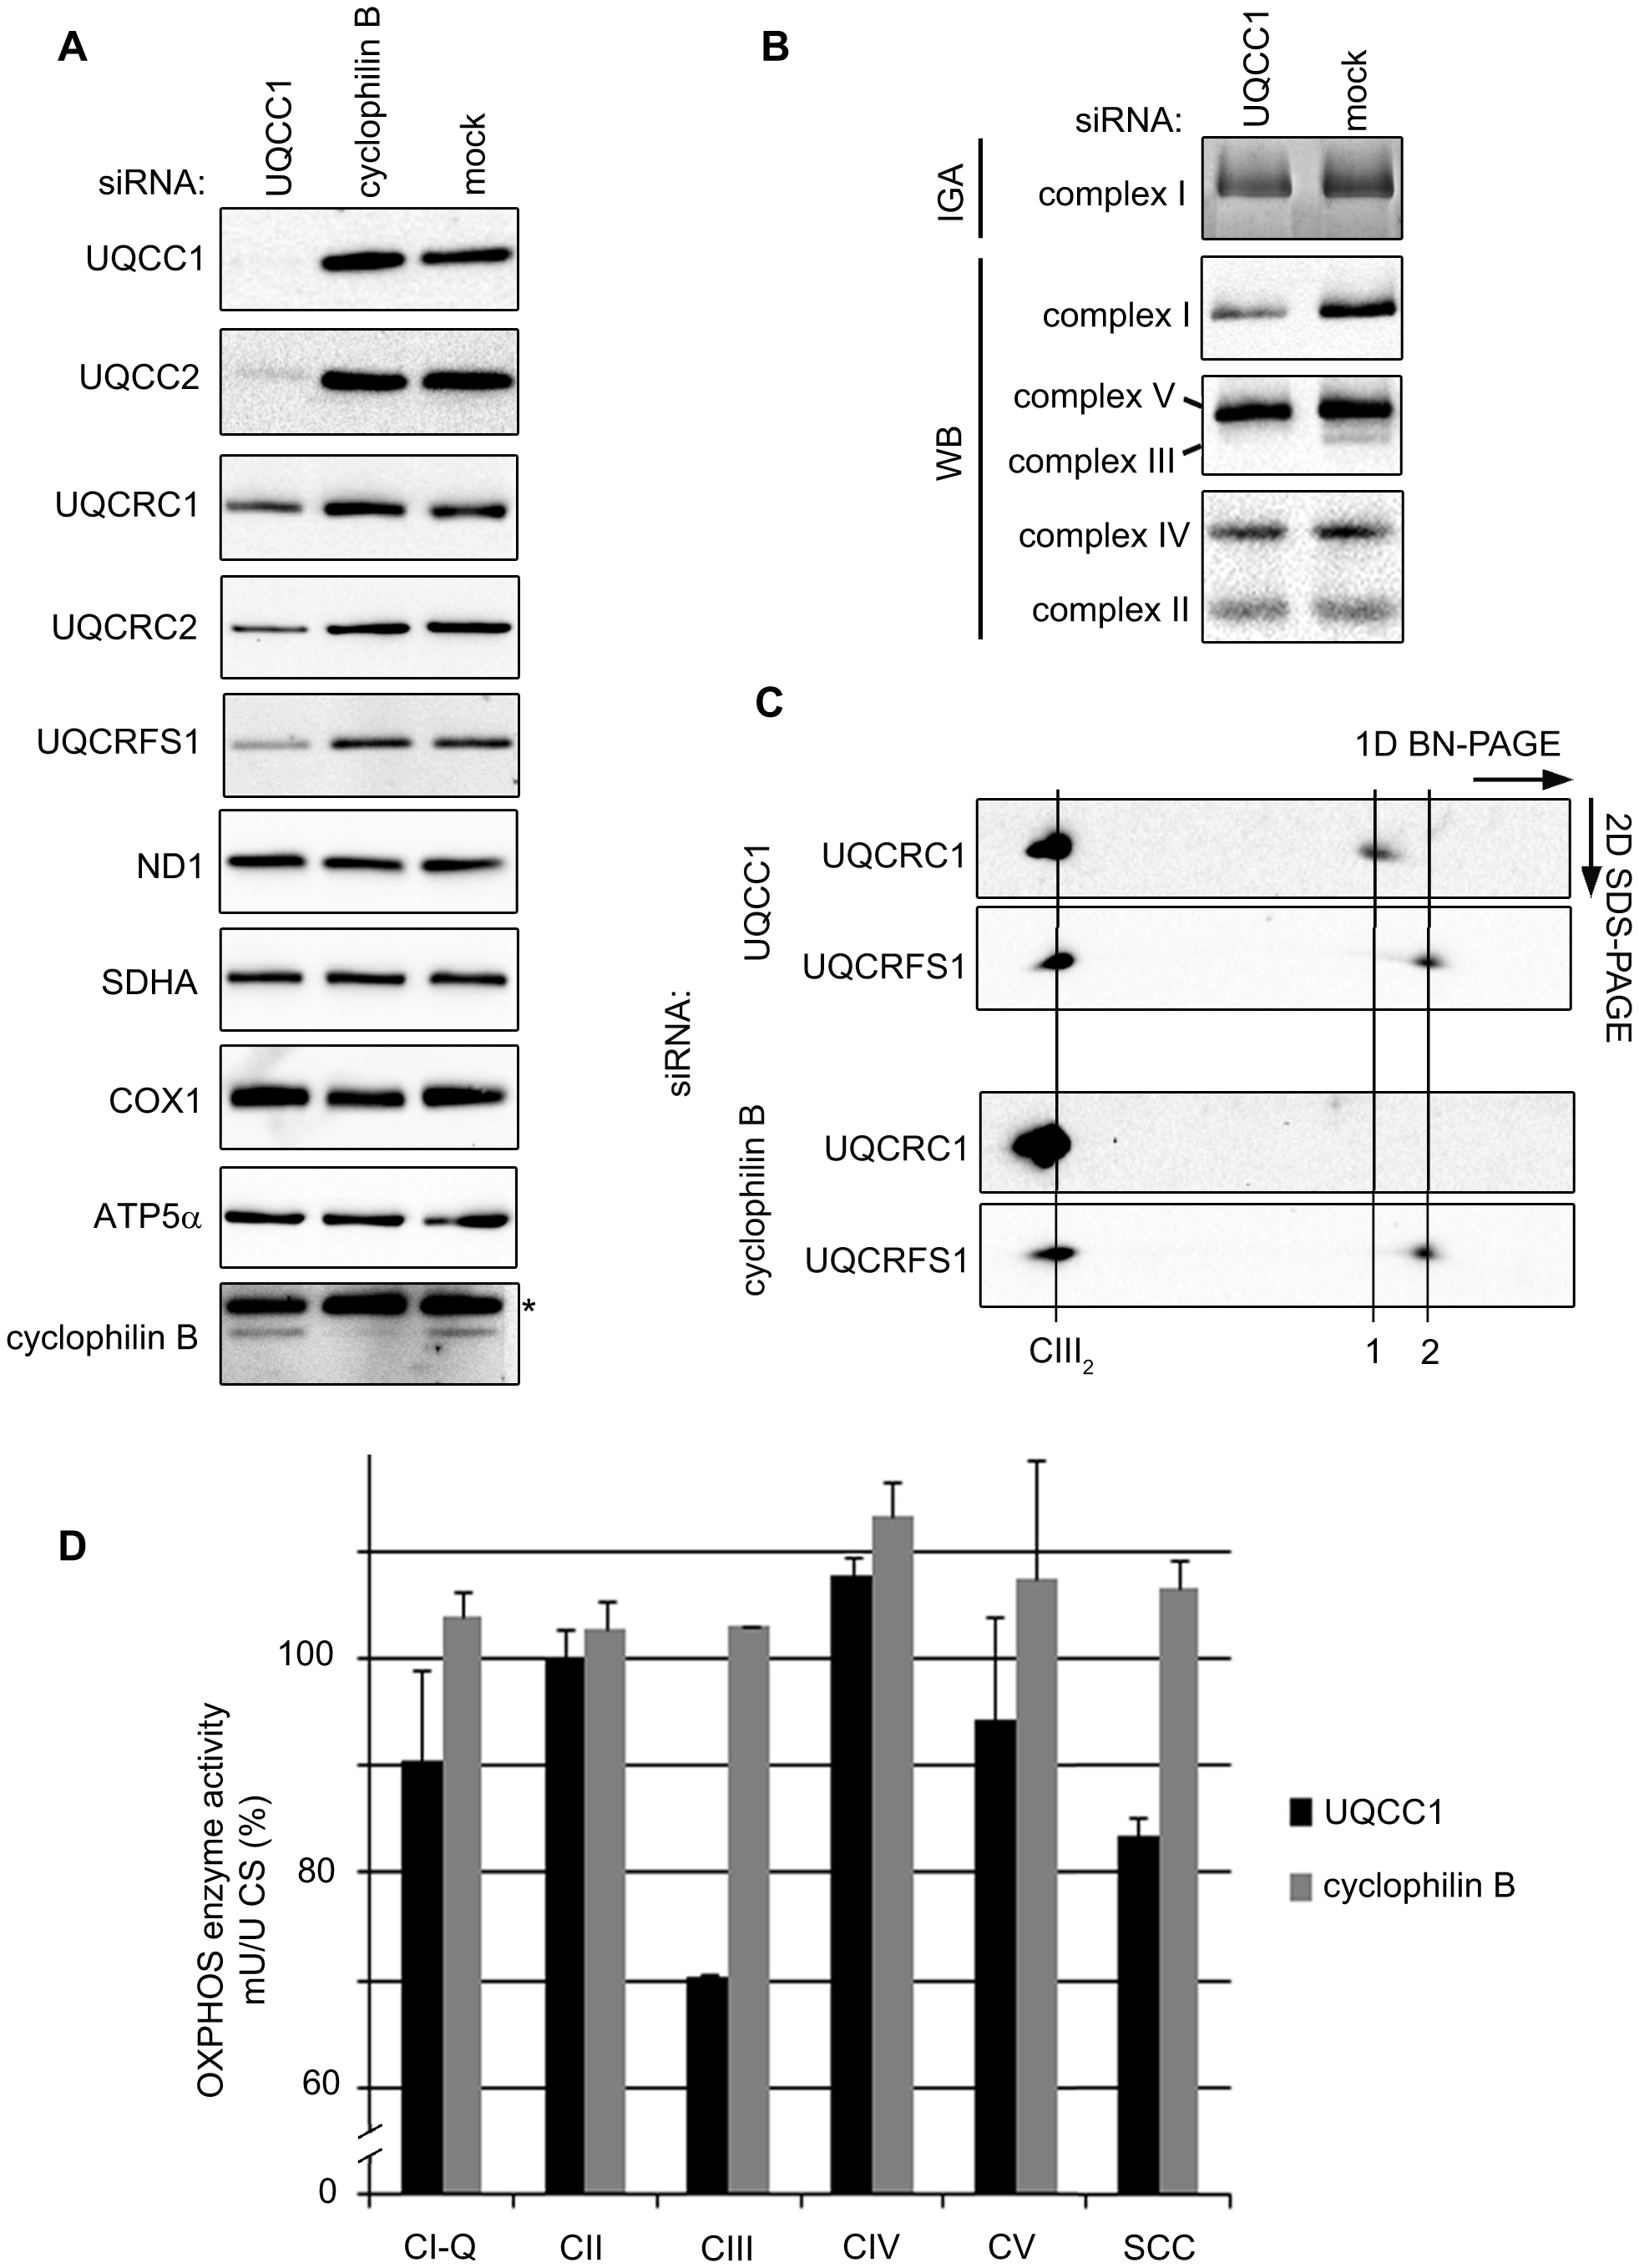 Depletion of the UQCC2 binding partner, UQCC1, affects complex III assembly.